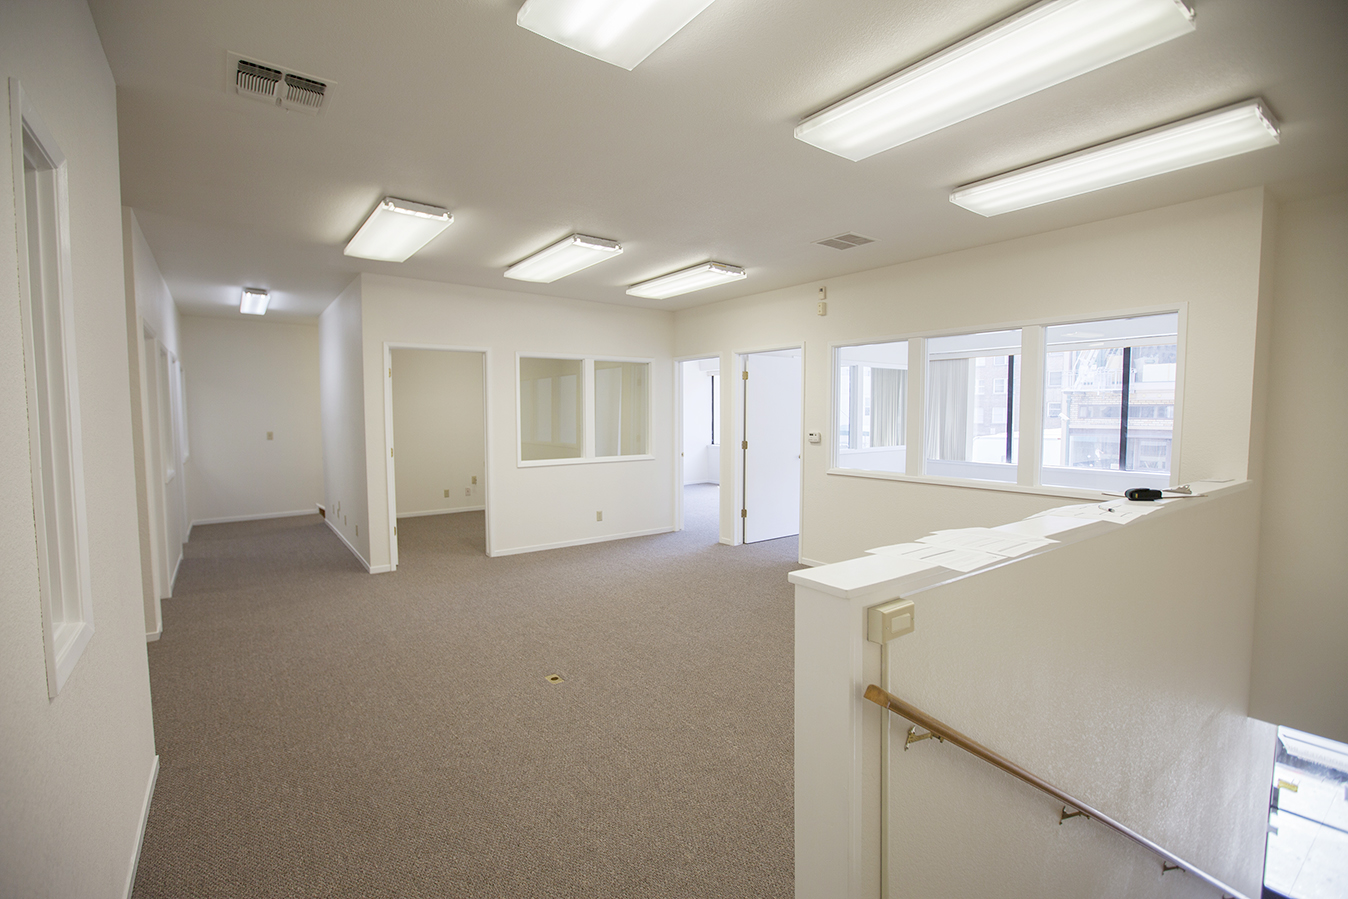 Here is the space before the remodel began. We're still under construction and it's already an improvement!